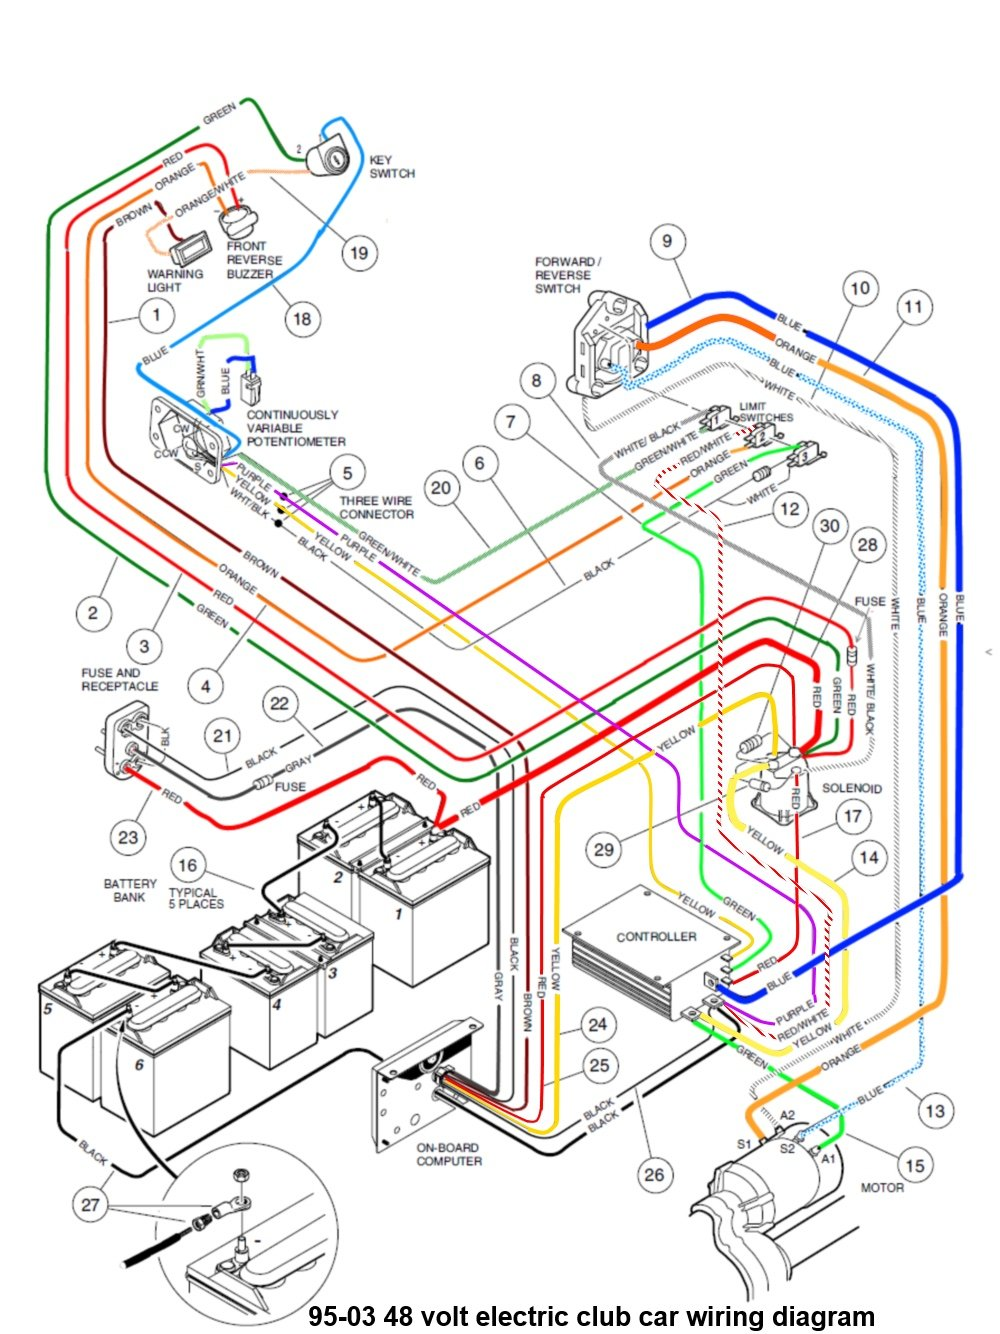 2002 48 volt club car wiring diagram club car top speed doesn't seem right - page 2 2002 48 volt club car battery wiring diagram